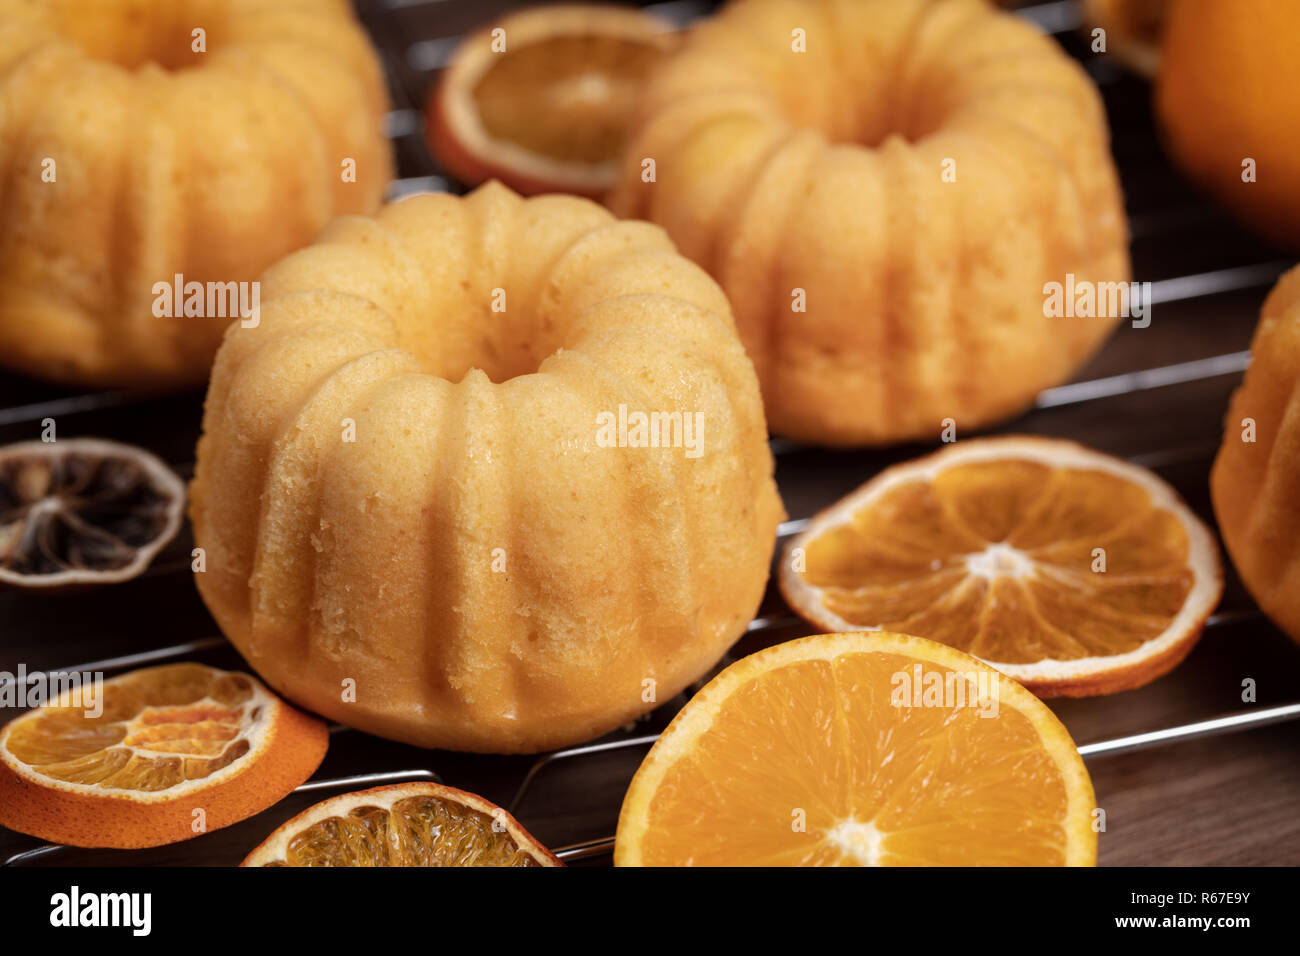 Small orange bundt cakes with fresh and dry oranges on cooling ruck, close up Stock Photo